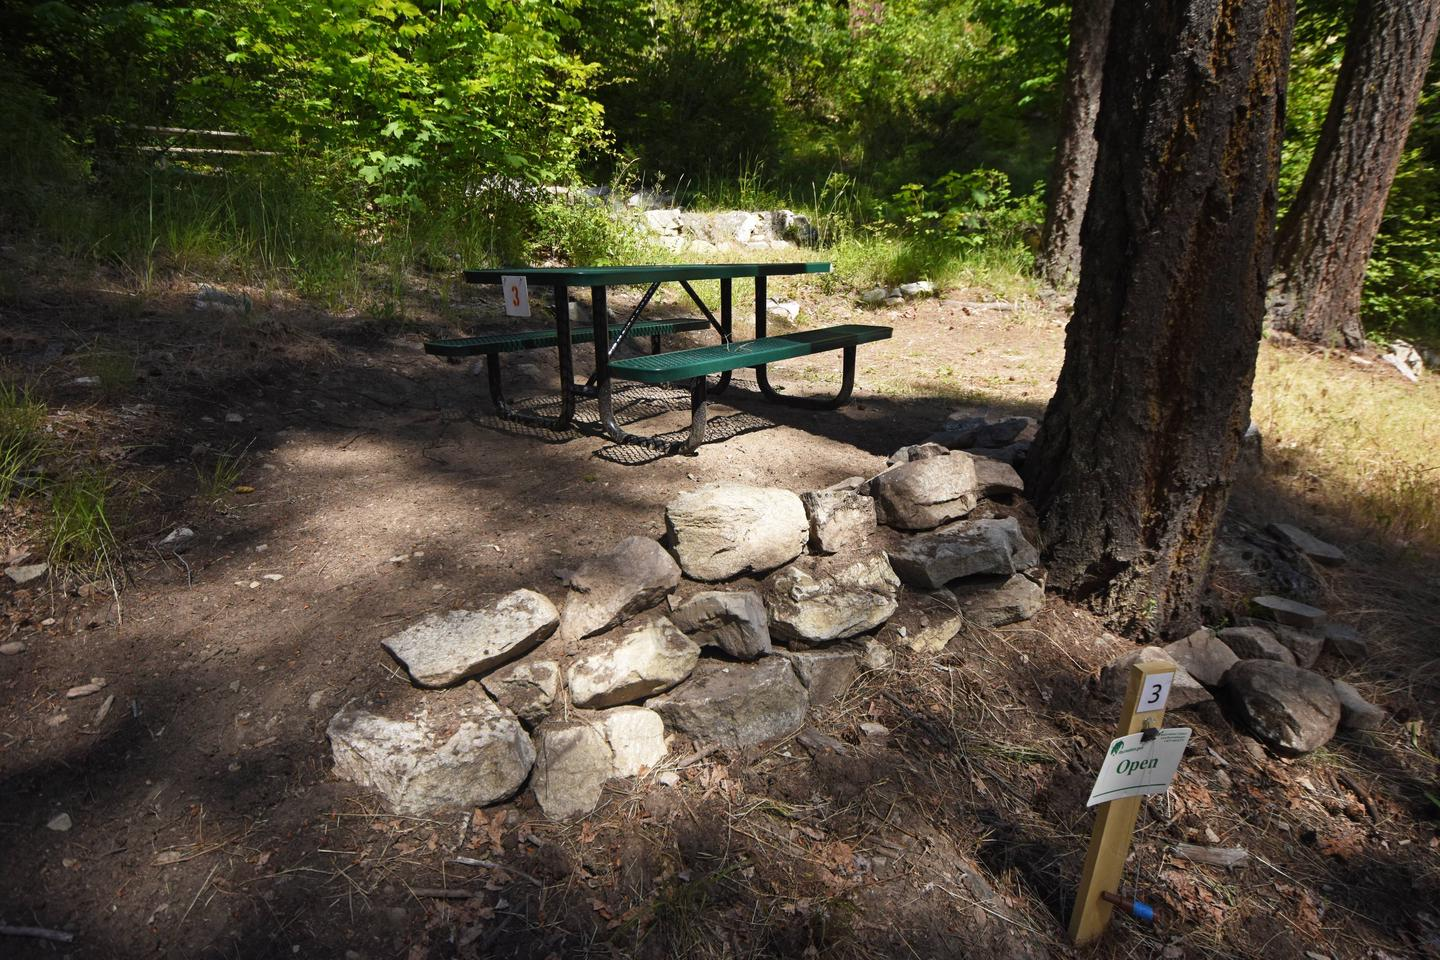 View of Lakeview campsite 3 with picnic table and tent pads.Lakeview Site 3